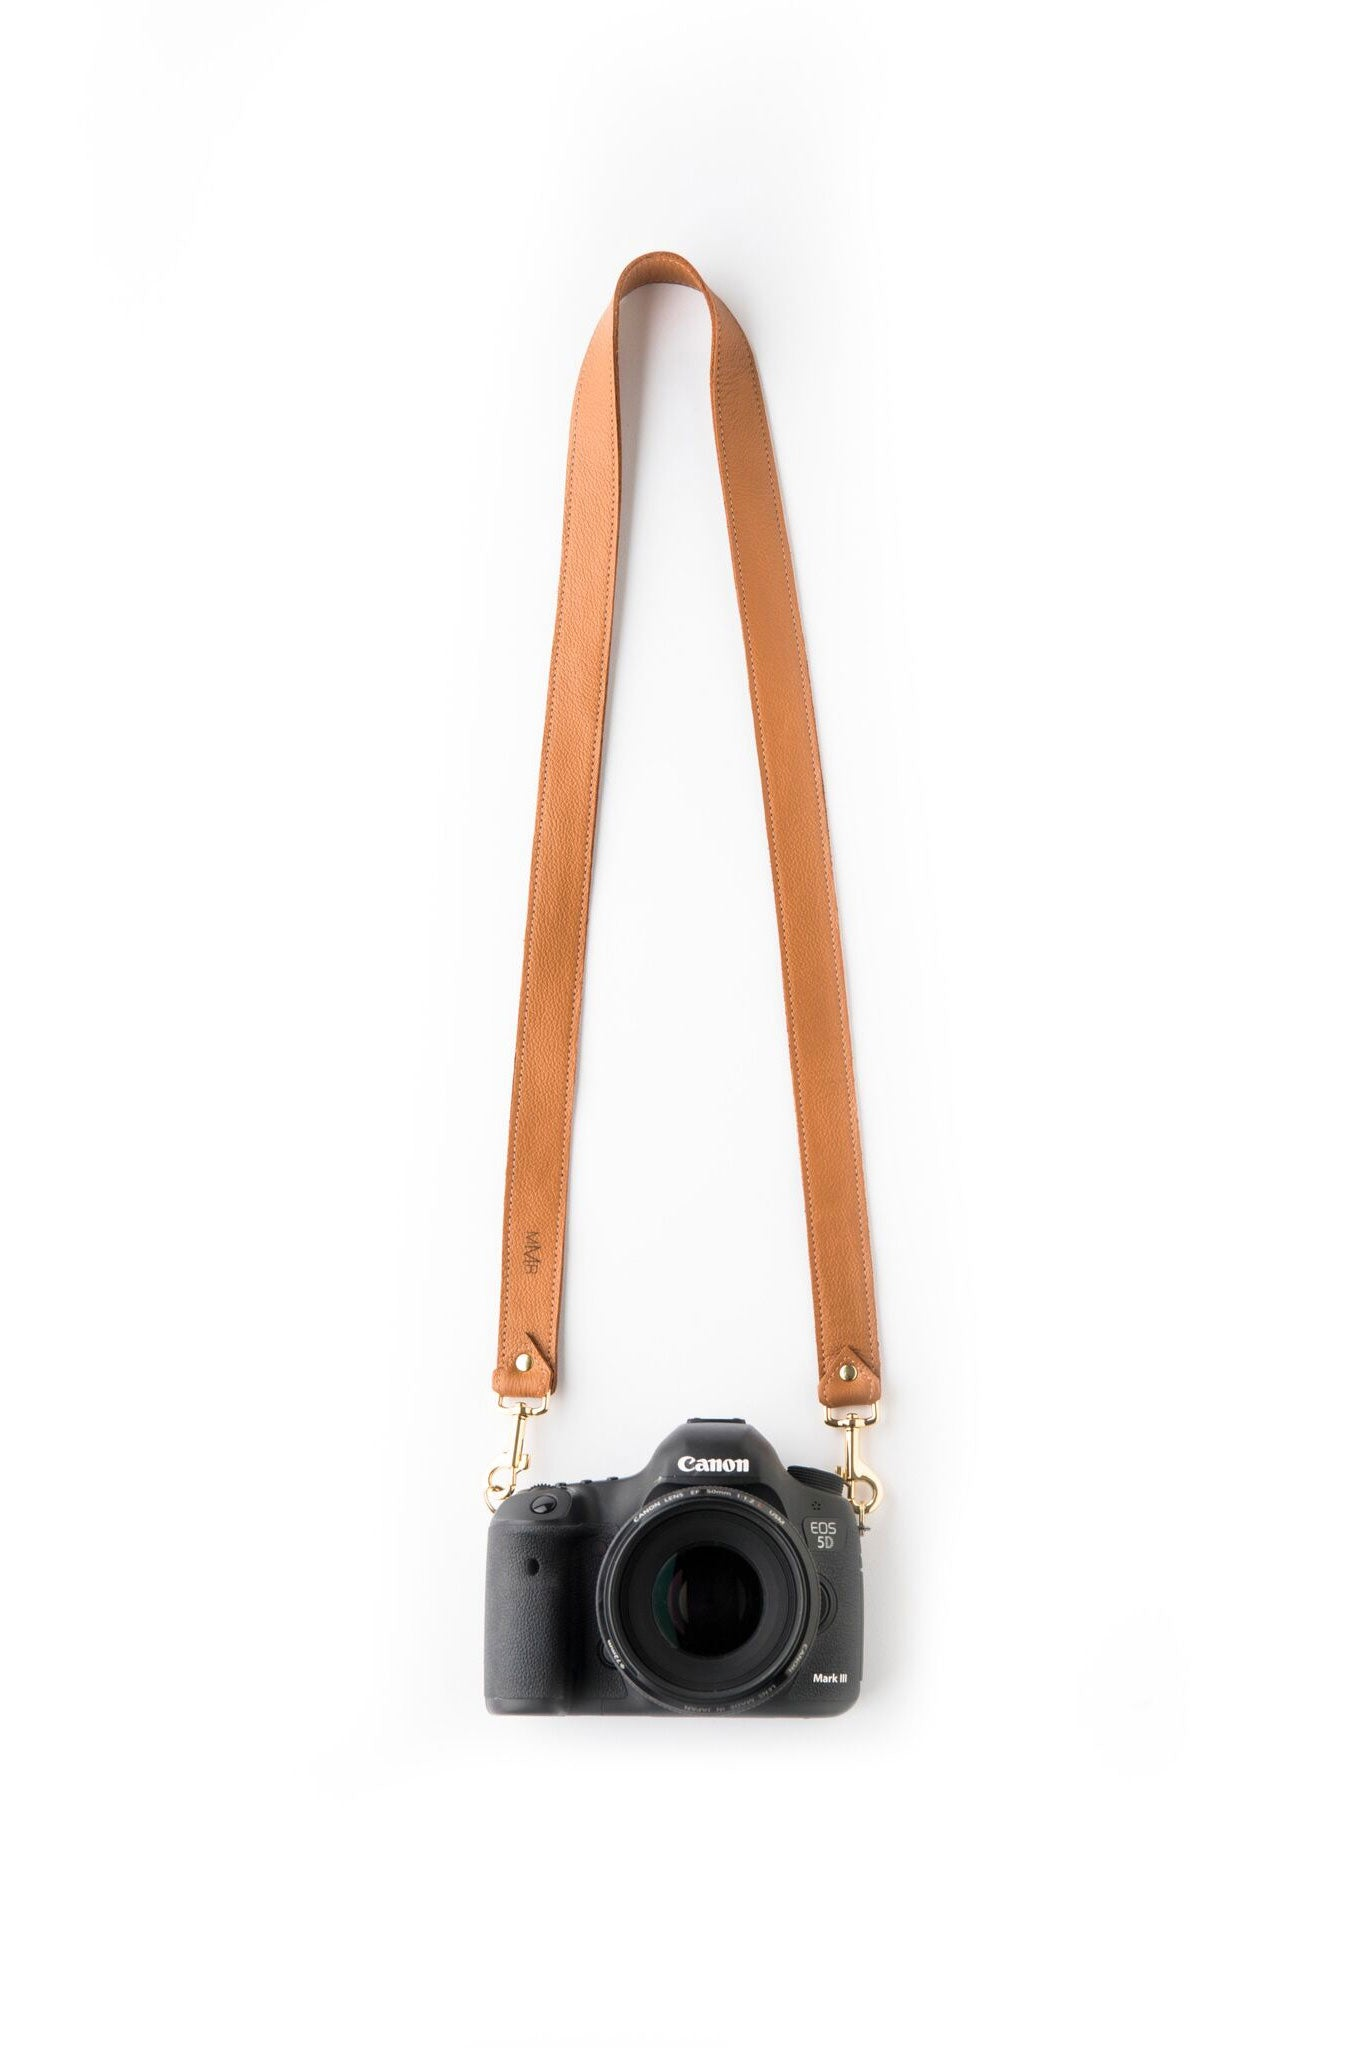 FOTO | The Designer in Saddle - a saddle brown genuine pebbled leather camera strap that can be personalized with a monogram or business logo, making this leather camera strap the perfect personalized gift.